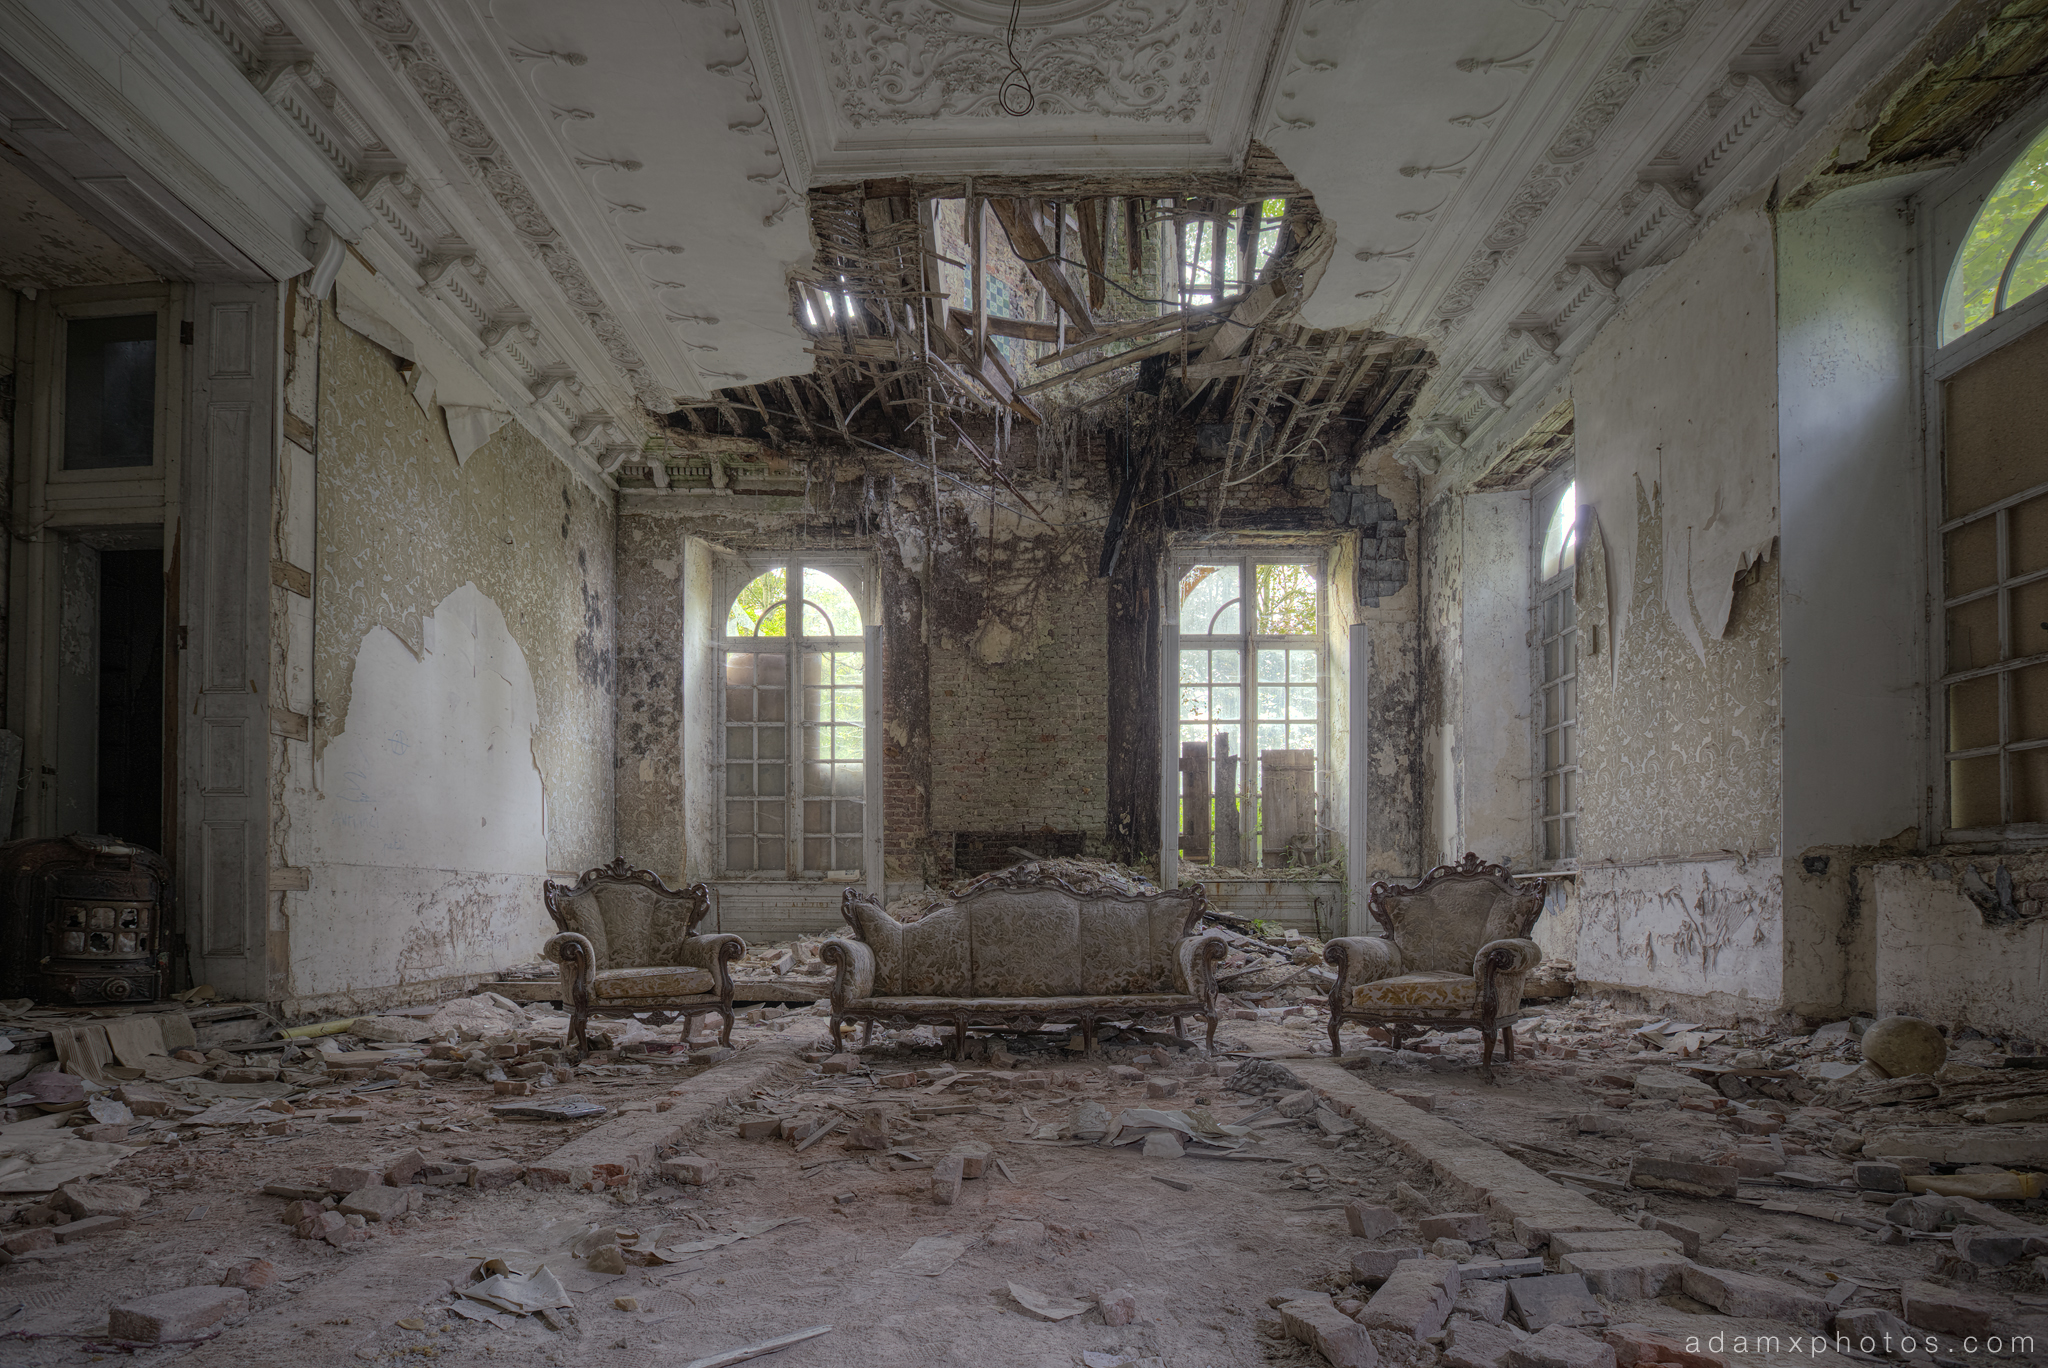 Living Room Money Shot chaise longue ornate chairs grand opulent opulence africa Adam X Urbex UE Urban Exploration Belgium Chateau Congo house maison villa townhouse abandoned derelict unused empty disused decay decayed decaying grimy grime collapsing